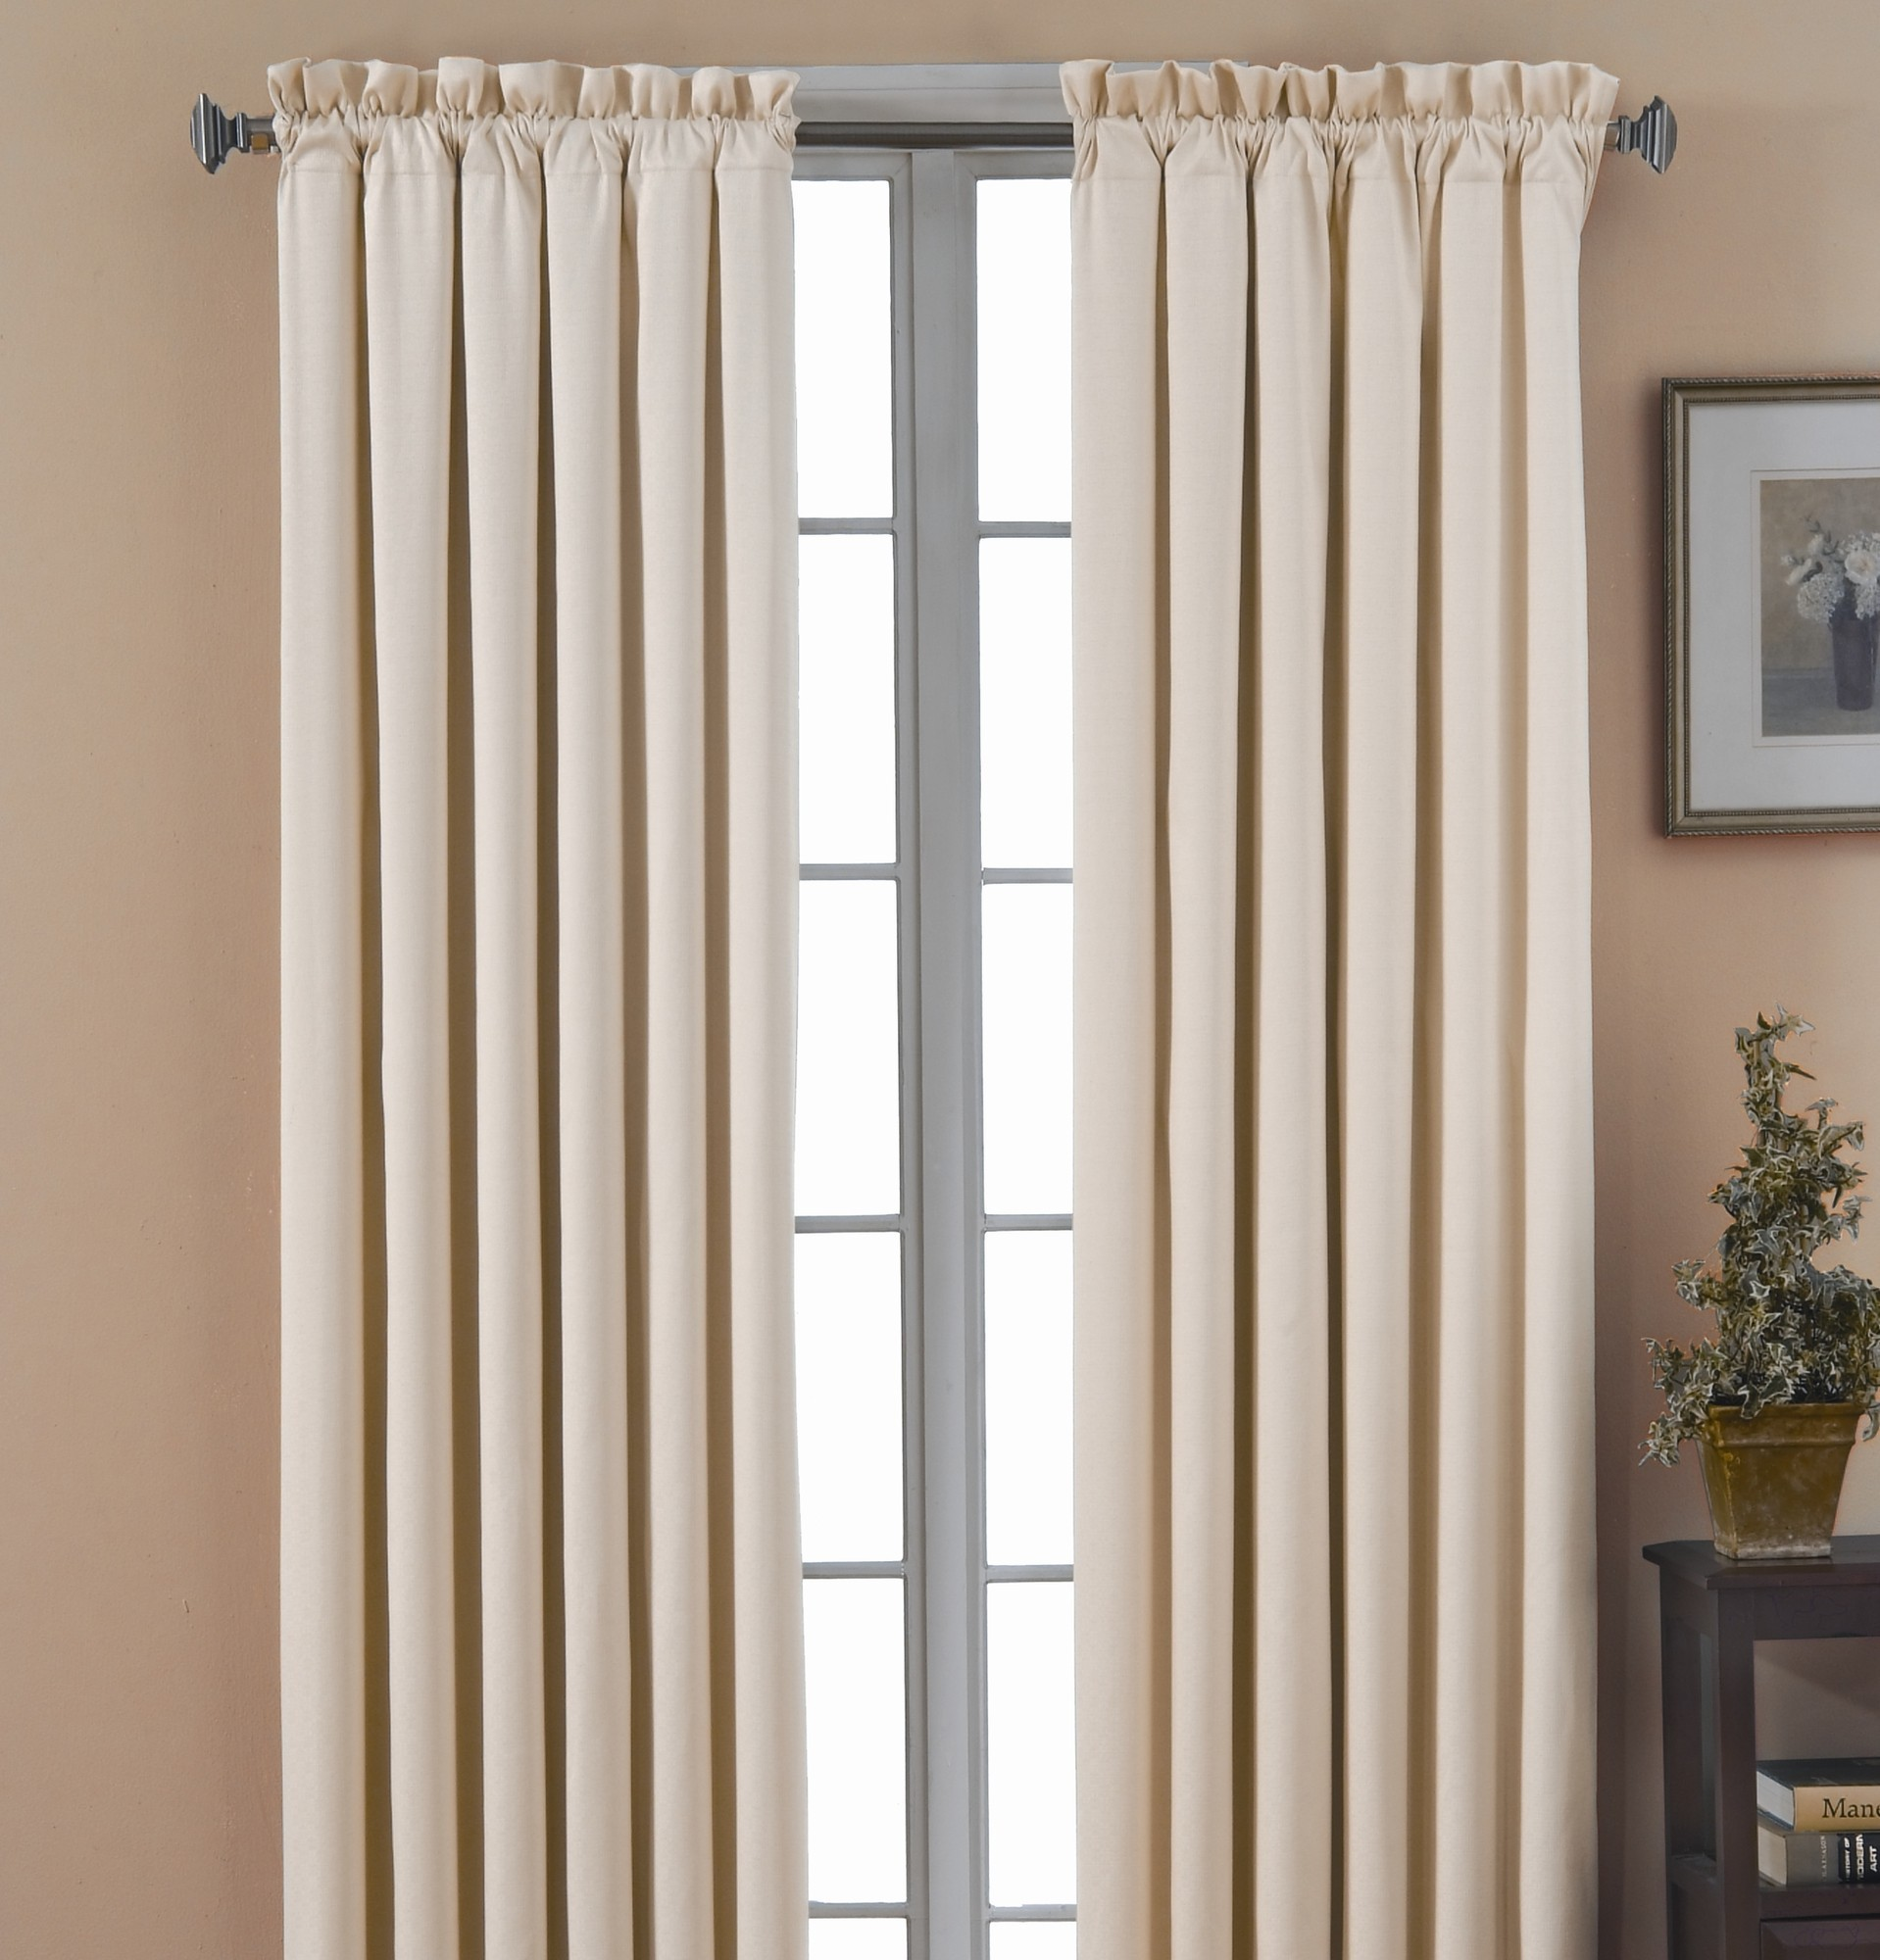 curtains from target soundproof curtains target acoustical curtains